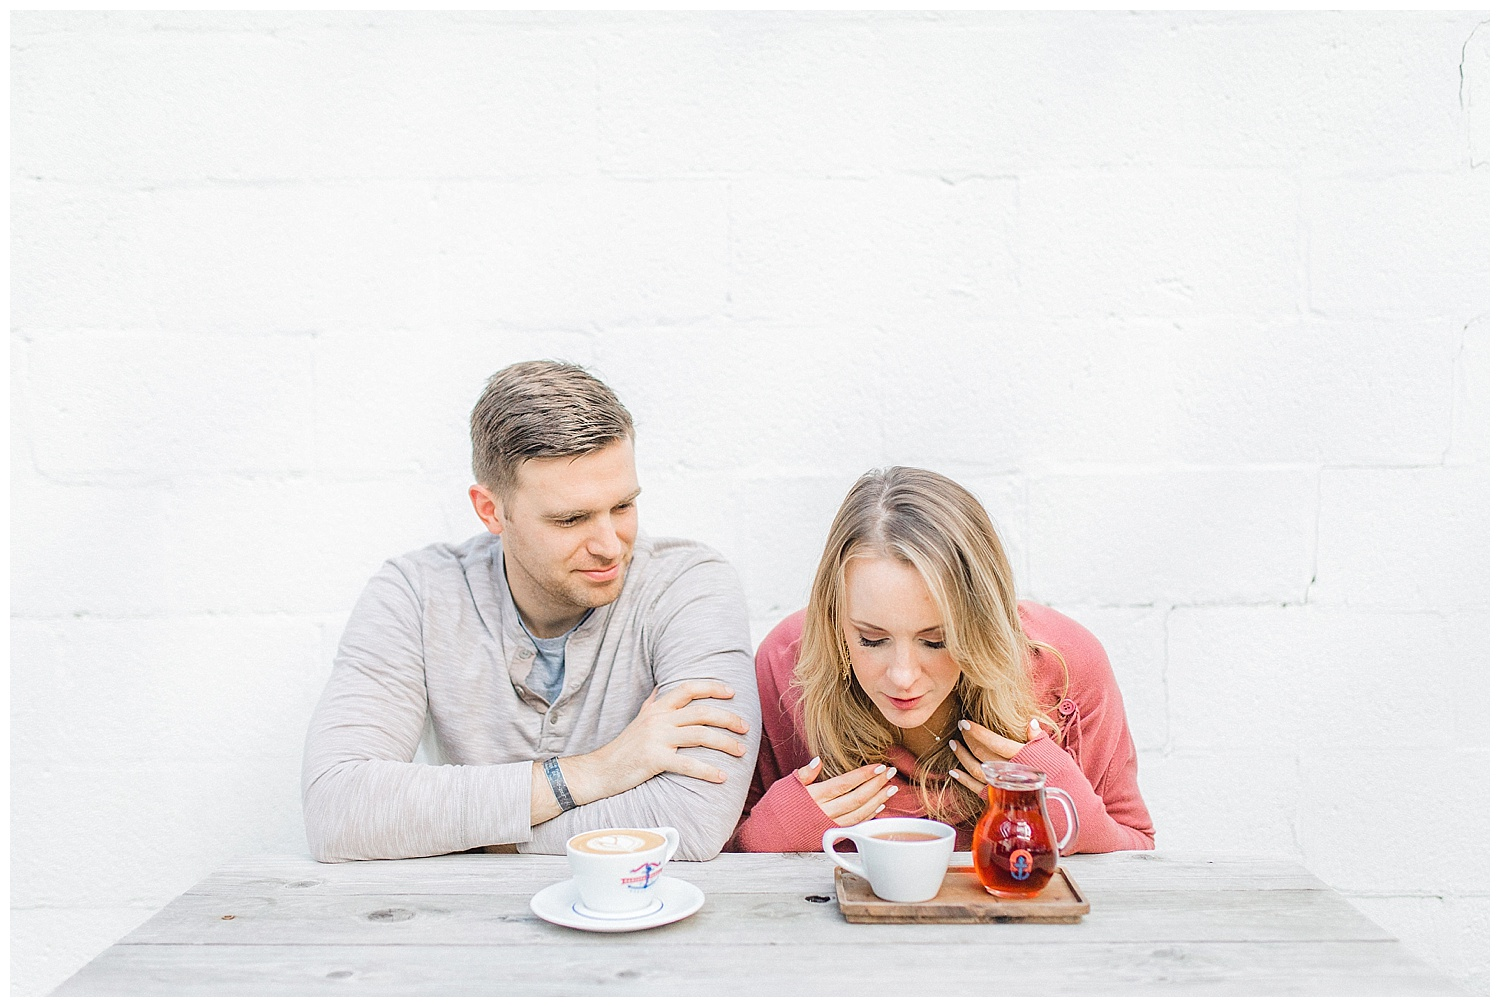 ERC_0860_Downtown Nashville Engagement Session at Barista Parlor | Emma Rose Company Wedding Photographer | Outfit Inspiration for Engagement Session | Kindred Light and Airy Photographer.jpg